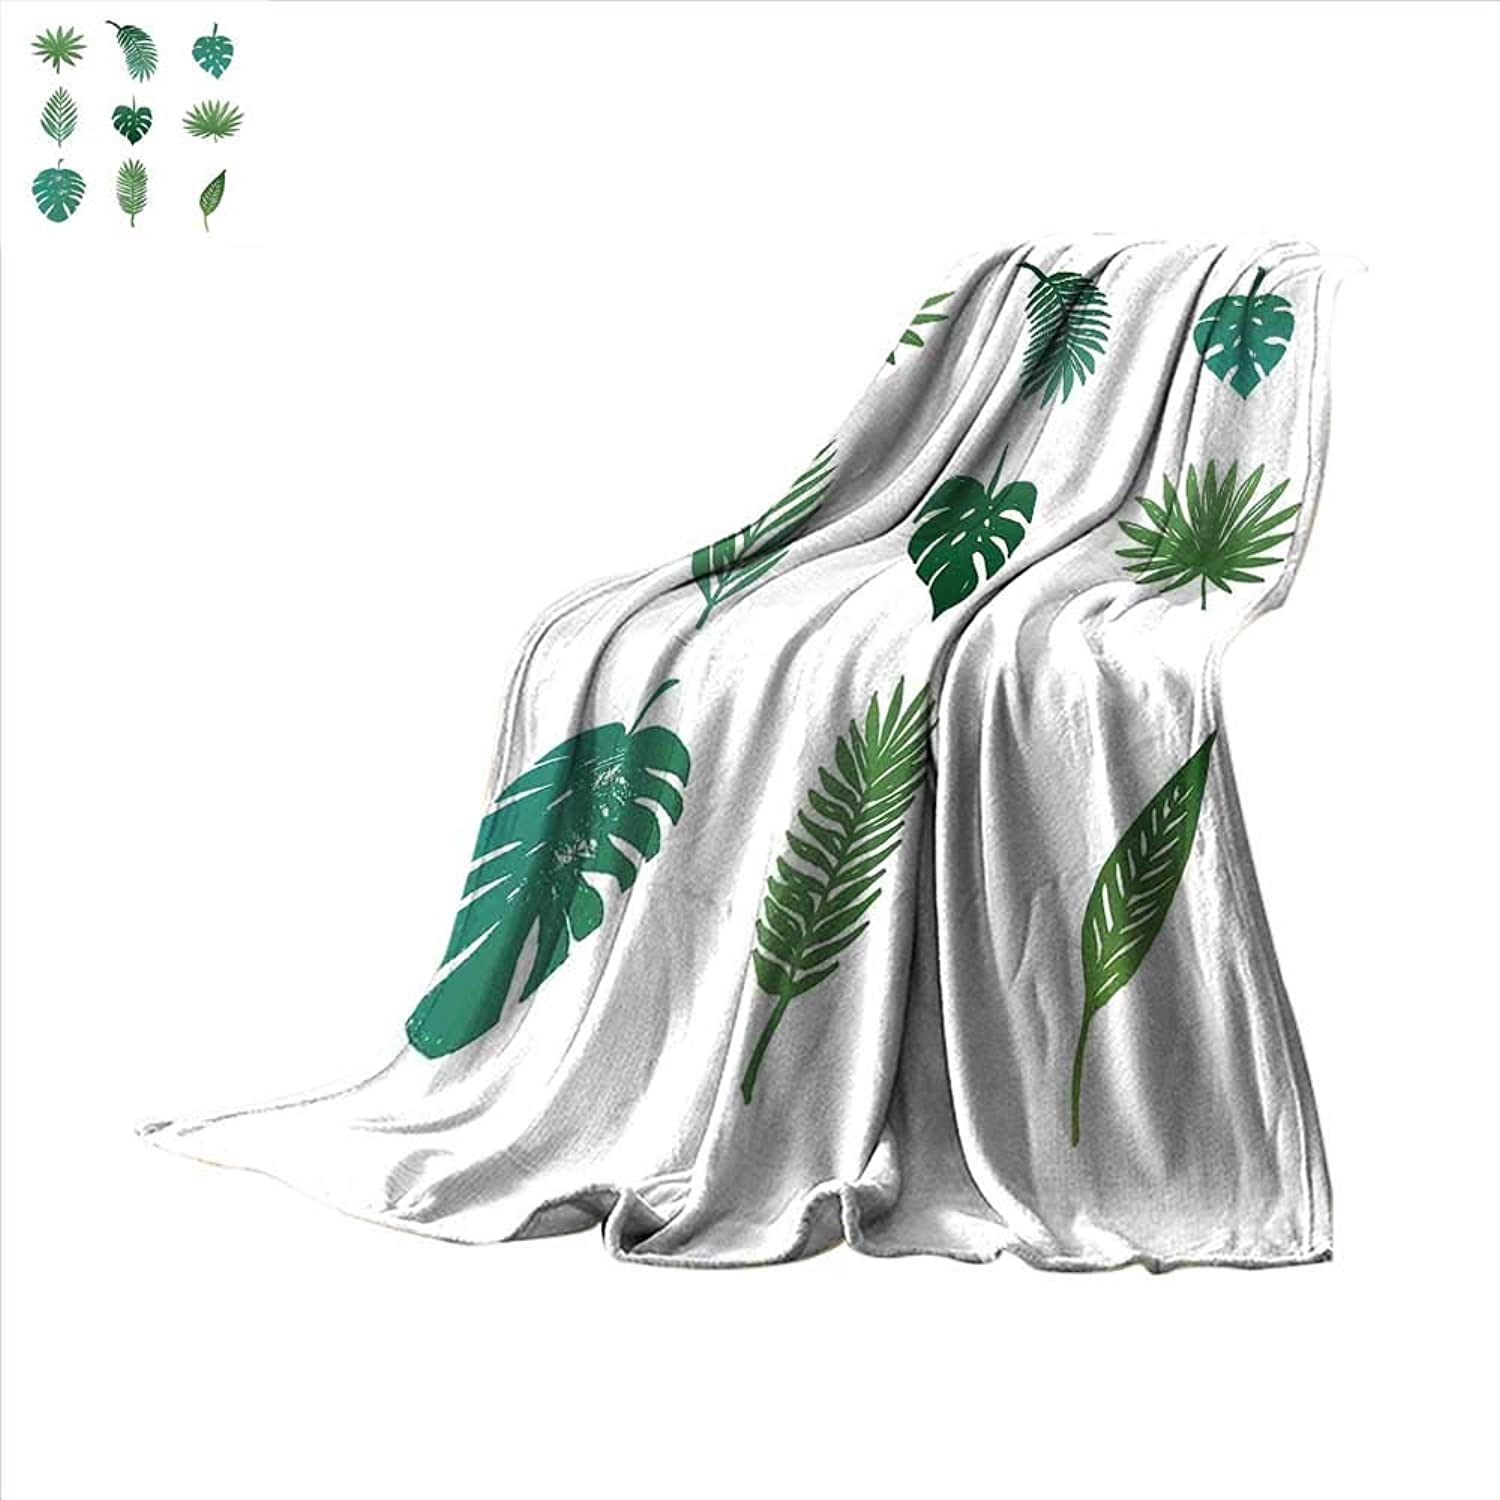 Smallbeefly Palm Tree Super Soft Lightweight Blanket Tropical Paradise Island Nature Theme Hand Drawn Collection Palm Foliage Oversized Travel Throw Cover Blanket 62 x60  Green and White